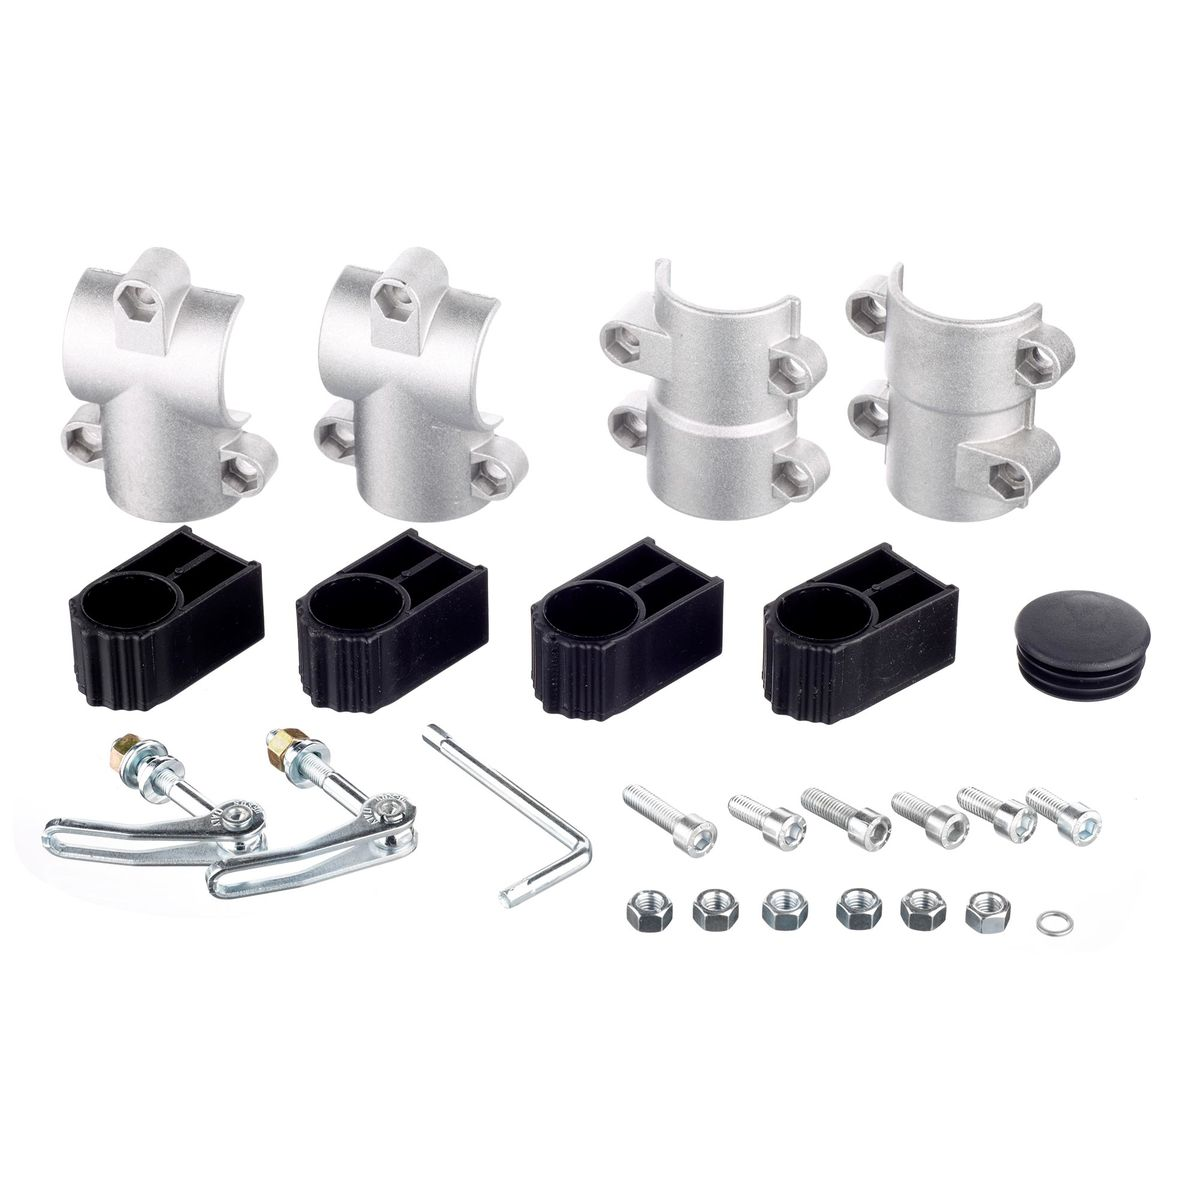 Xtreme Spare parts kit for S1300 repair stands   Stands